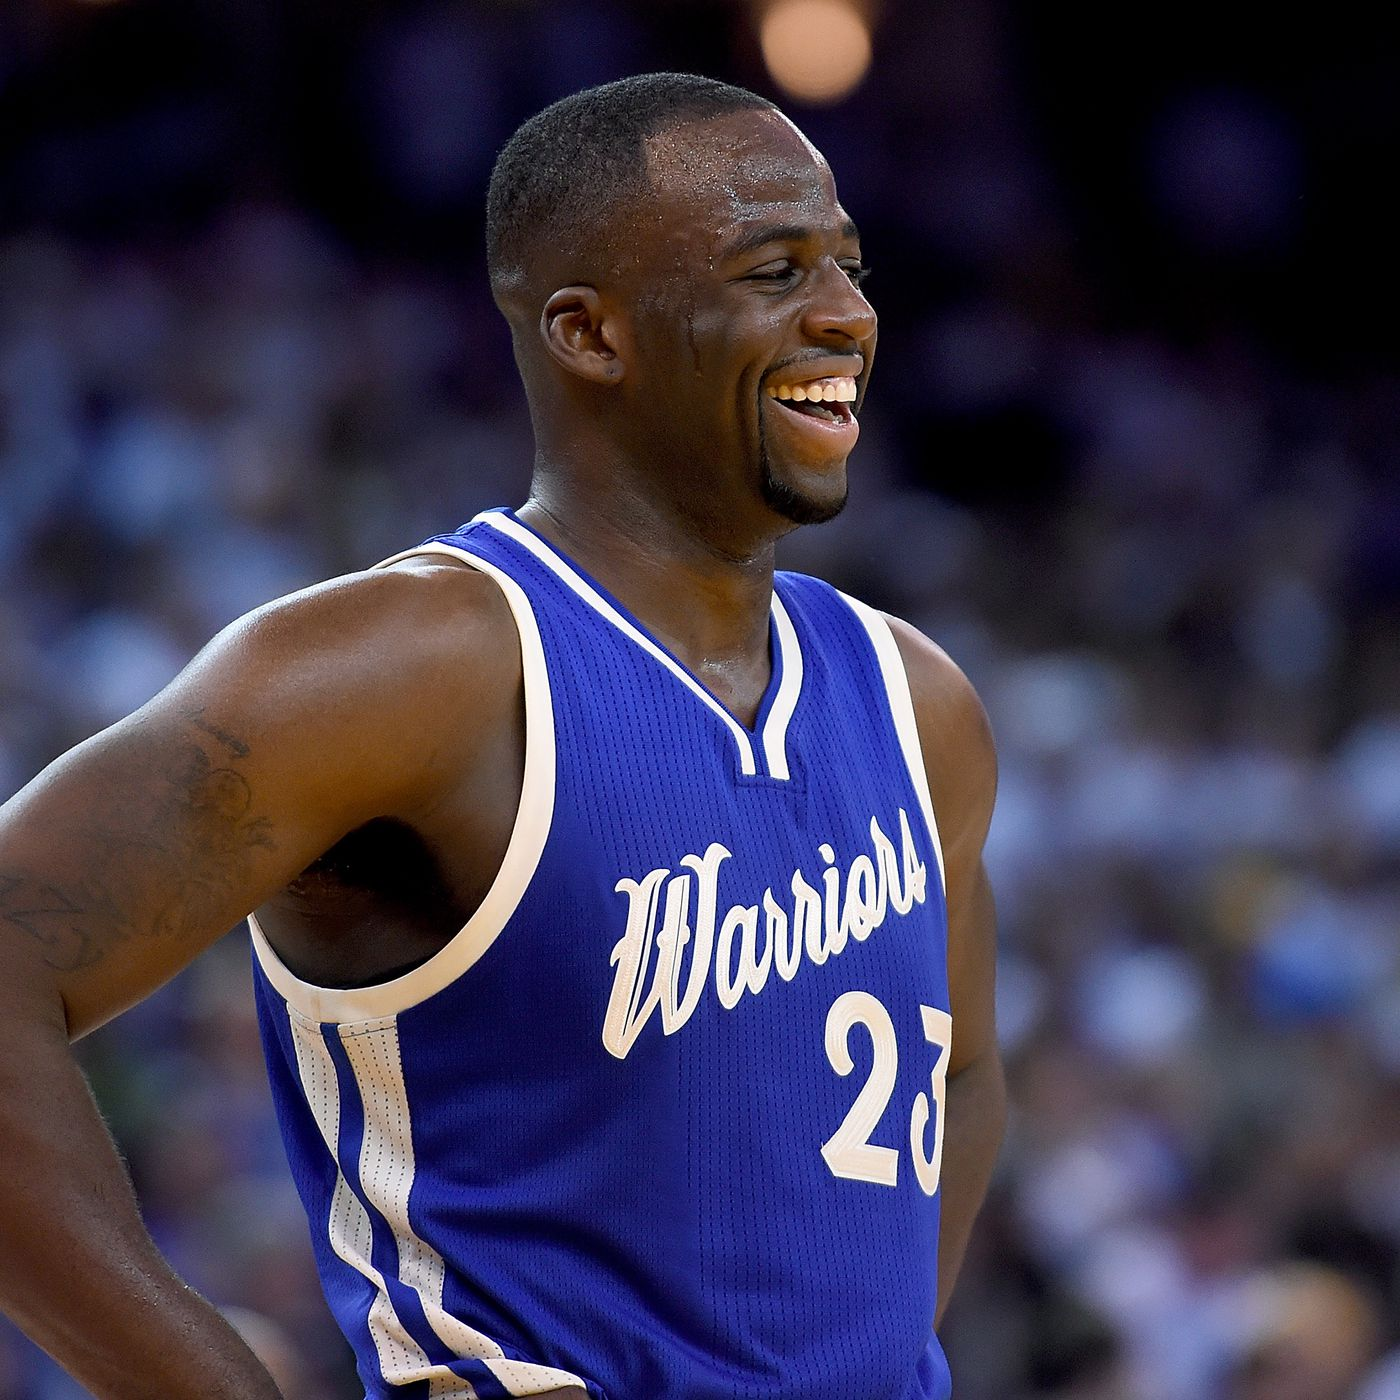 Christmas Day Uniforms 2020 NBA Christmas uniforms: The best and worst jerseys of all time